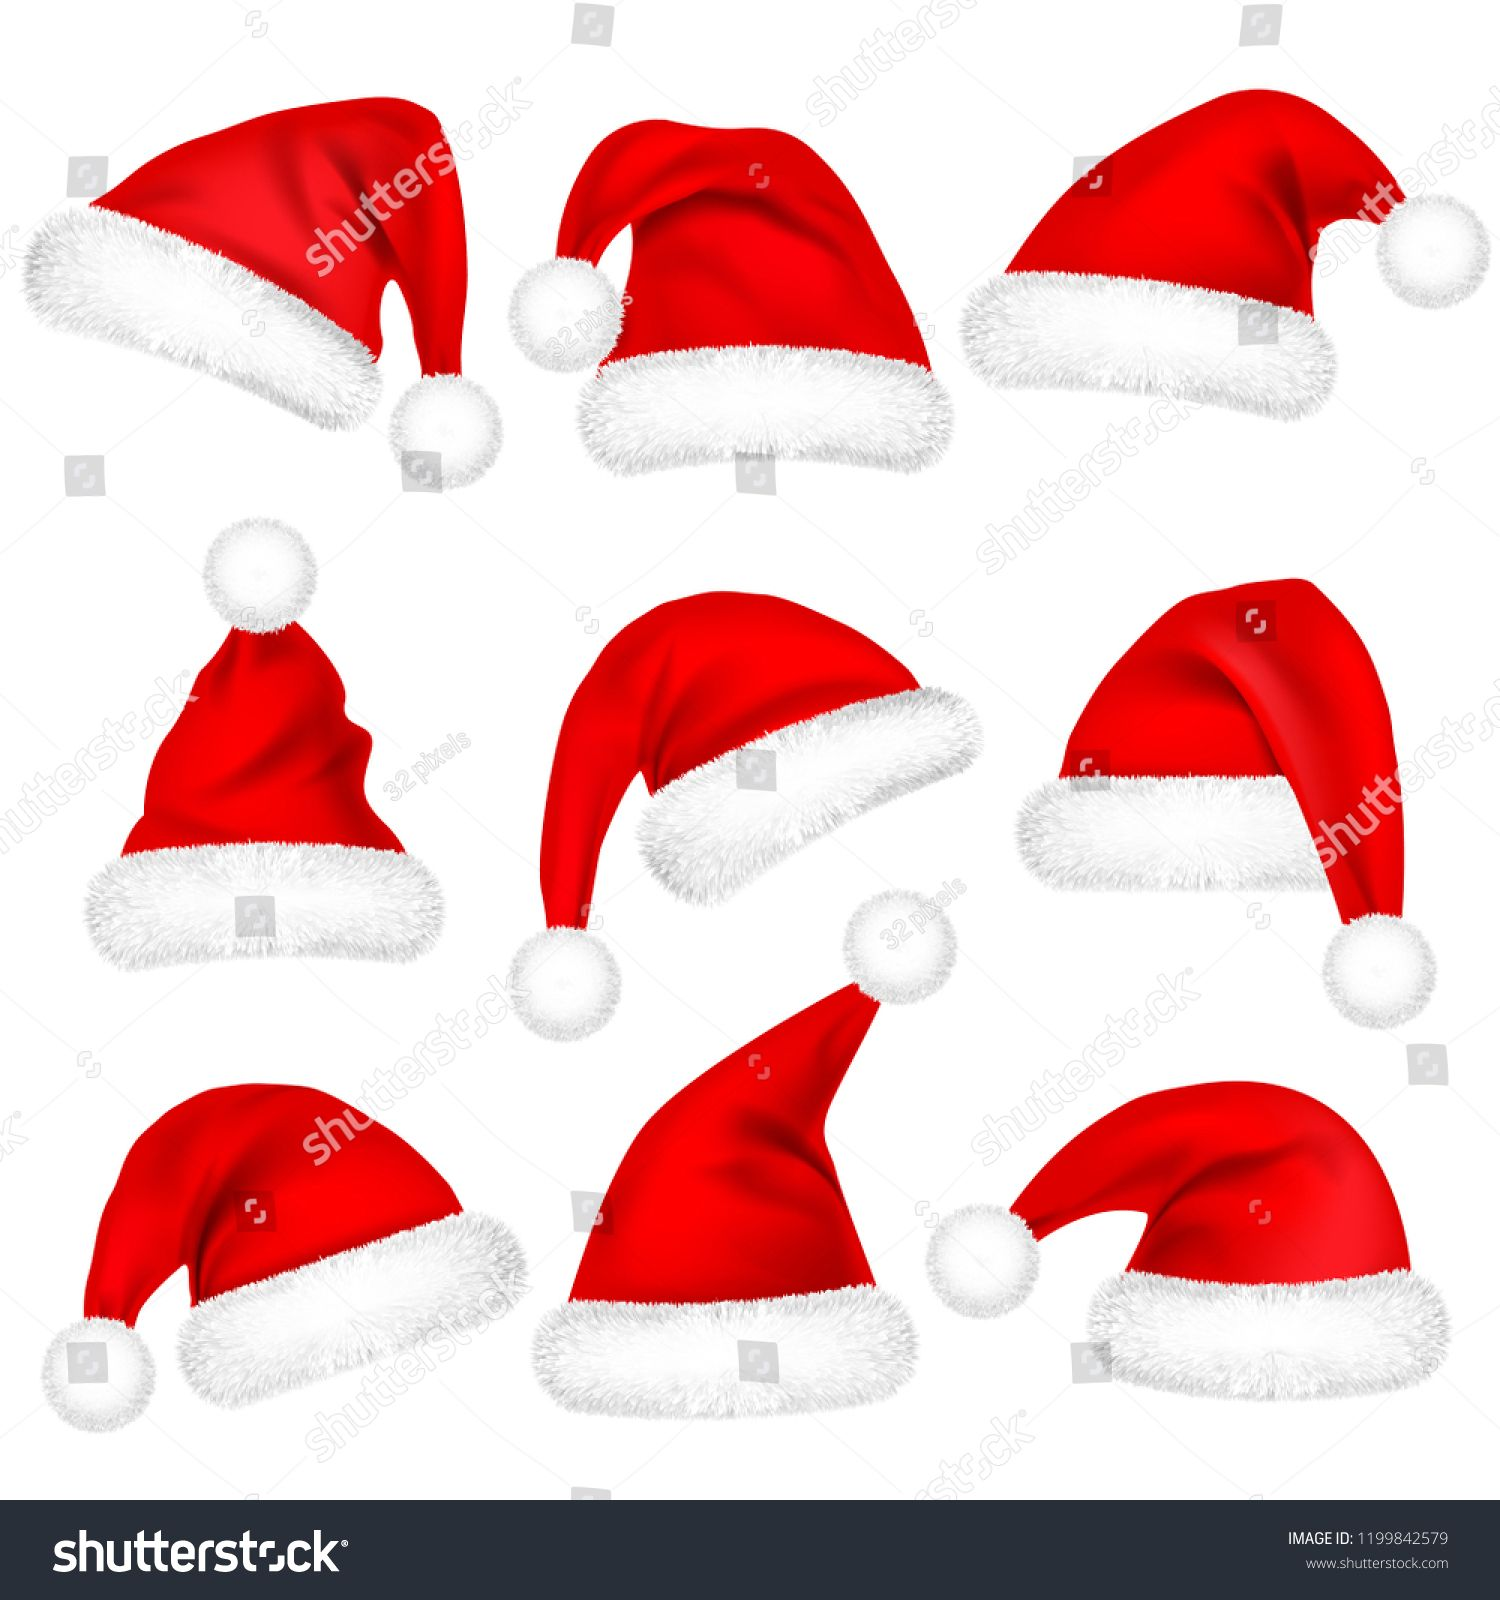 Christmas Santa Claus Hats With Fur Set New Year Red Hat Isolated On White Background Winter Cap Vector Illustration Santa Claus Hat Santa Claus Winter Cap